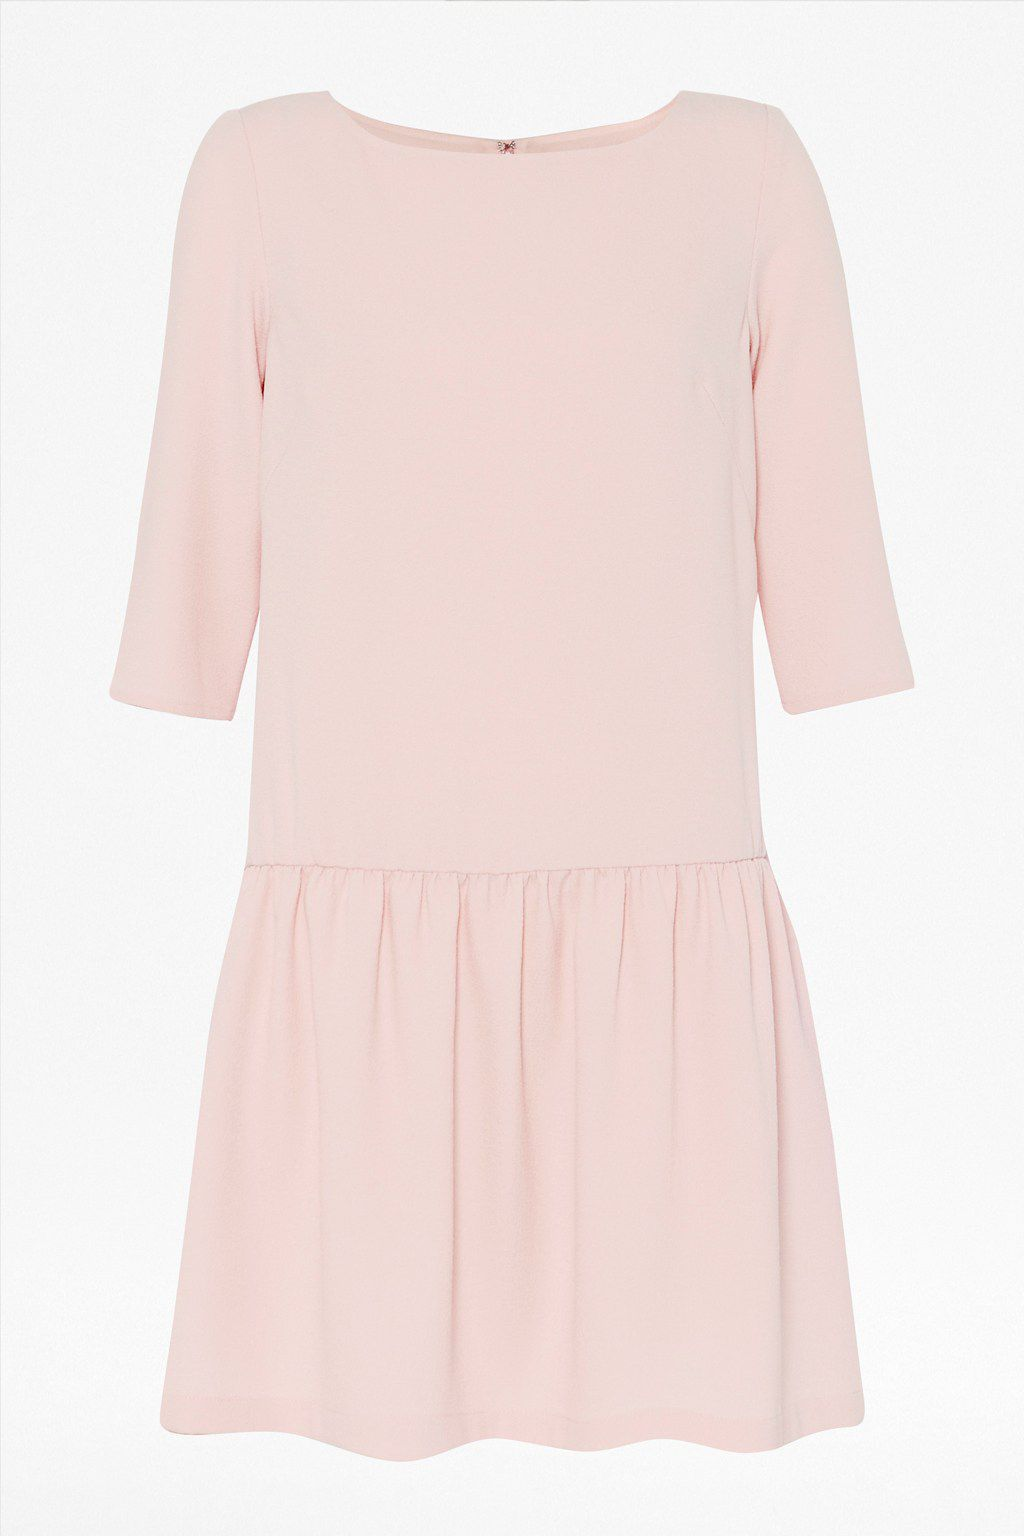 Tennis crepe 3/4 sleeve dress